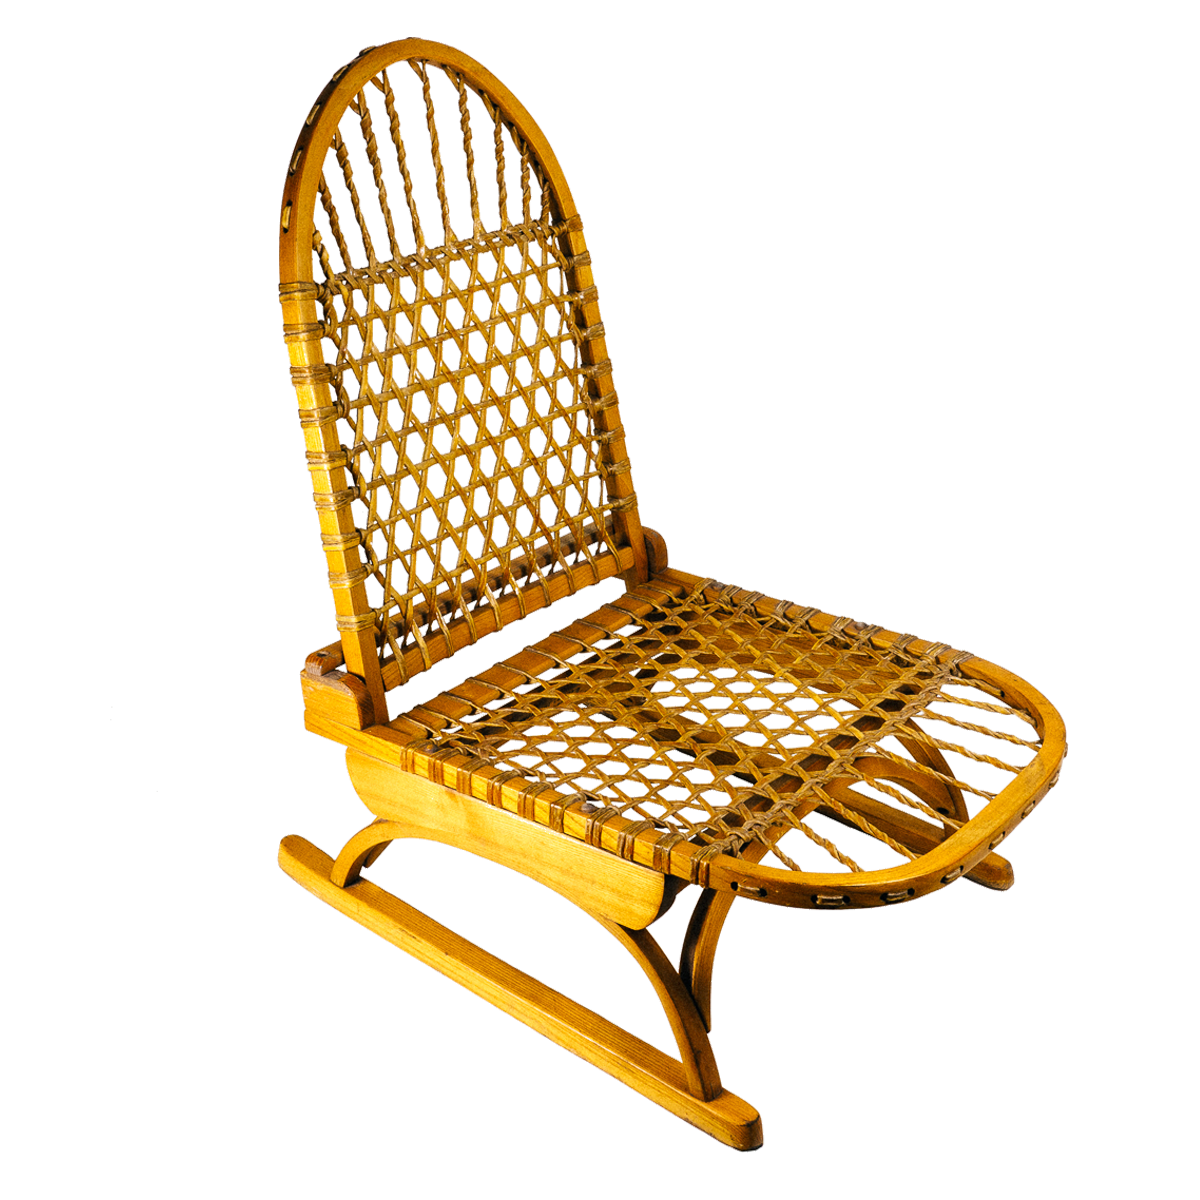 canoe chair swivel height adjustment vermont tubbs snowshoe style wilderness trading co